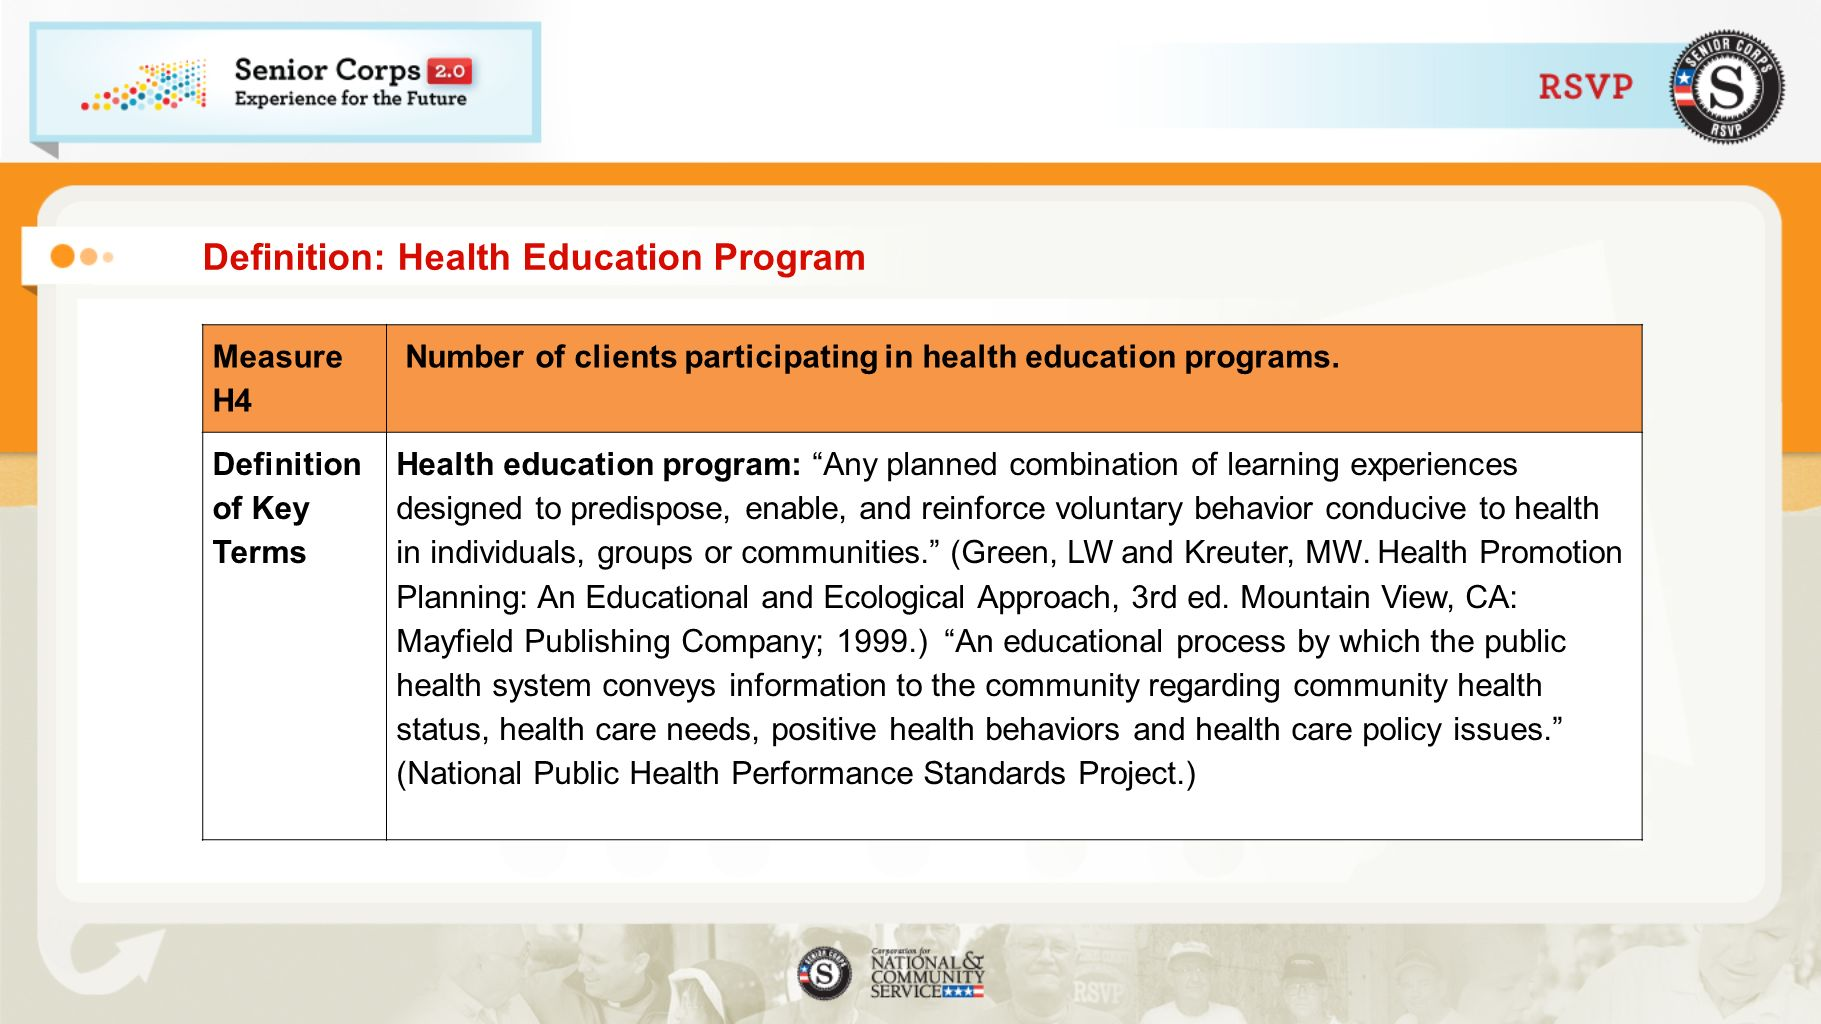 Definition: Health Education Program